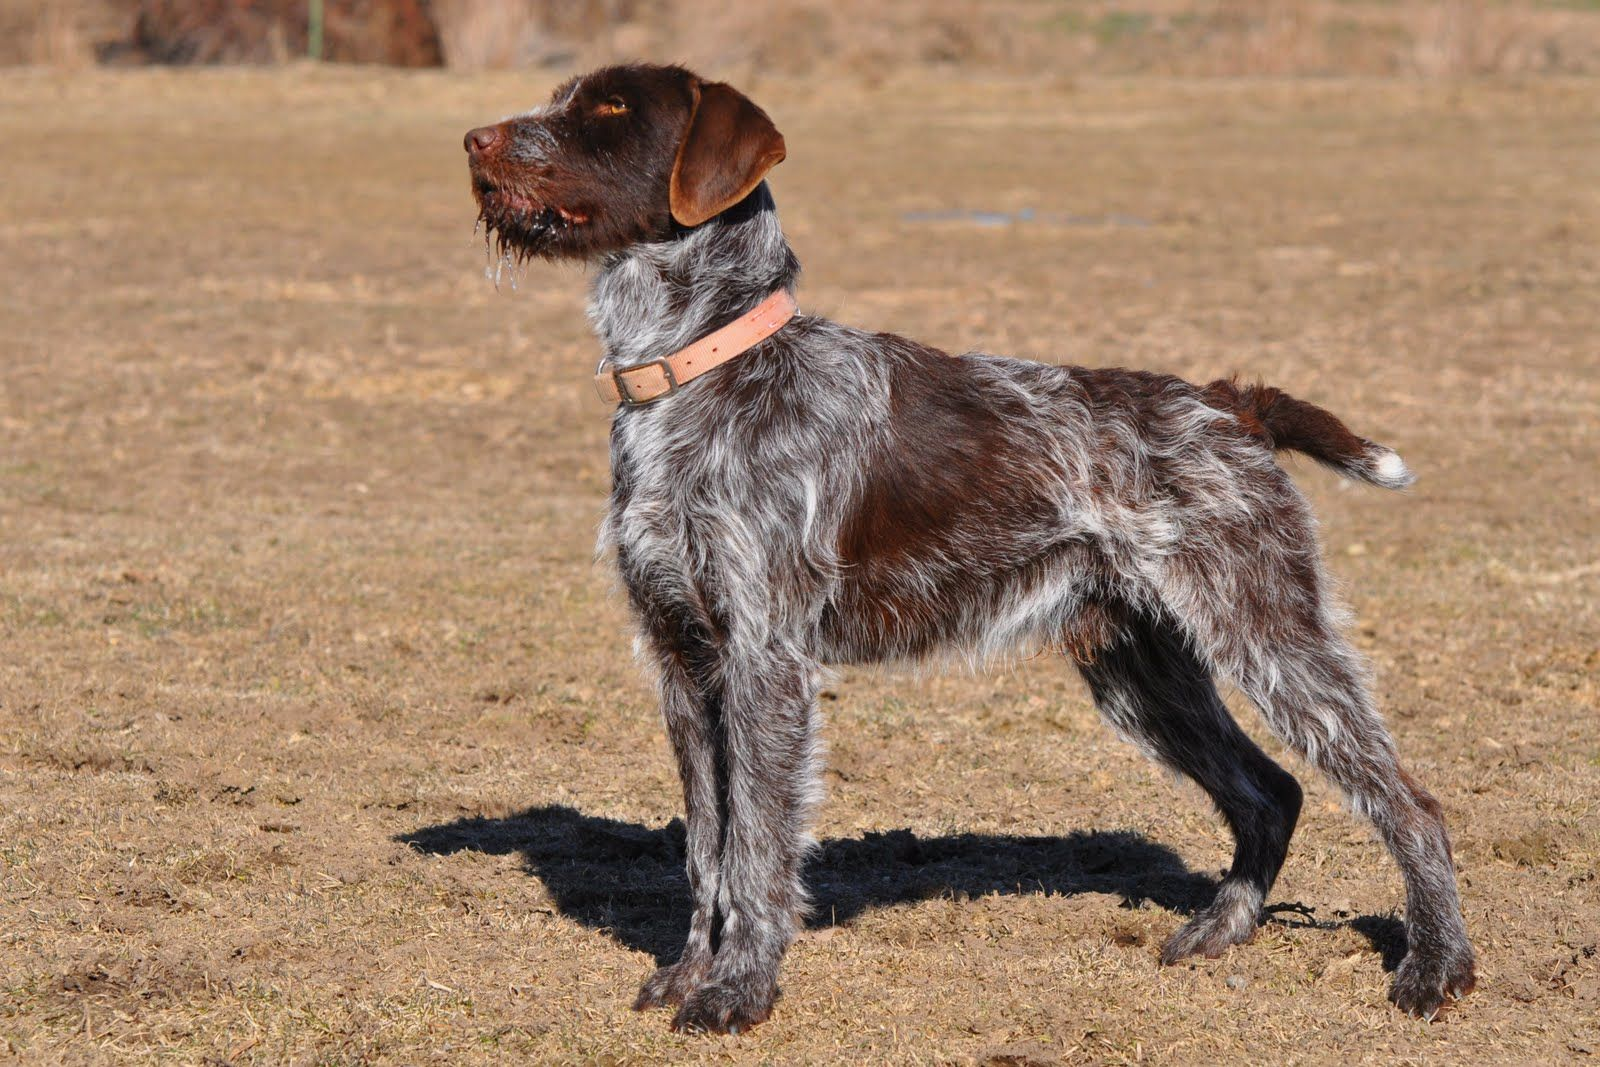 Wirehaired Pointing Griffon Duck Hunting Images & Pictures